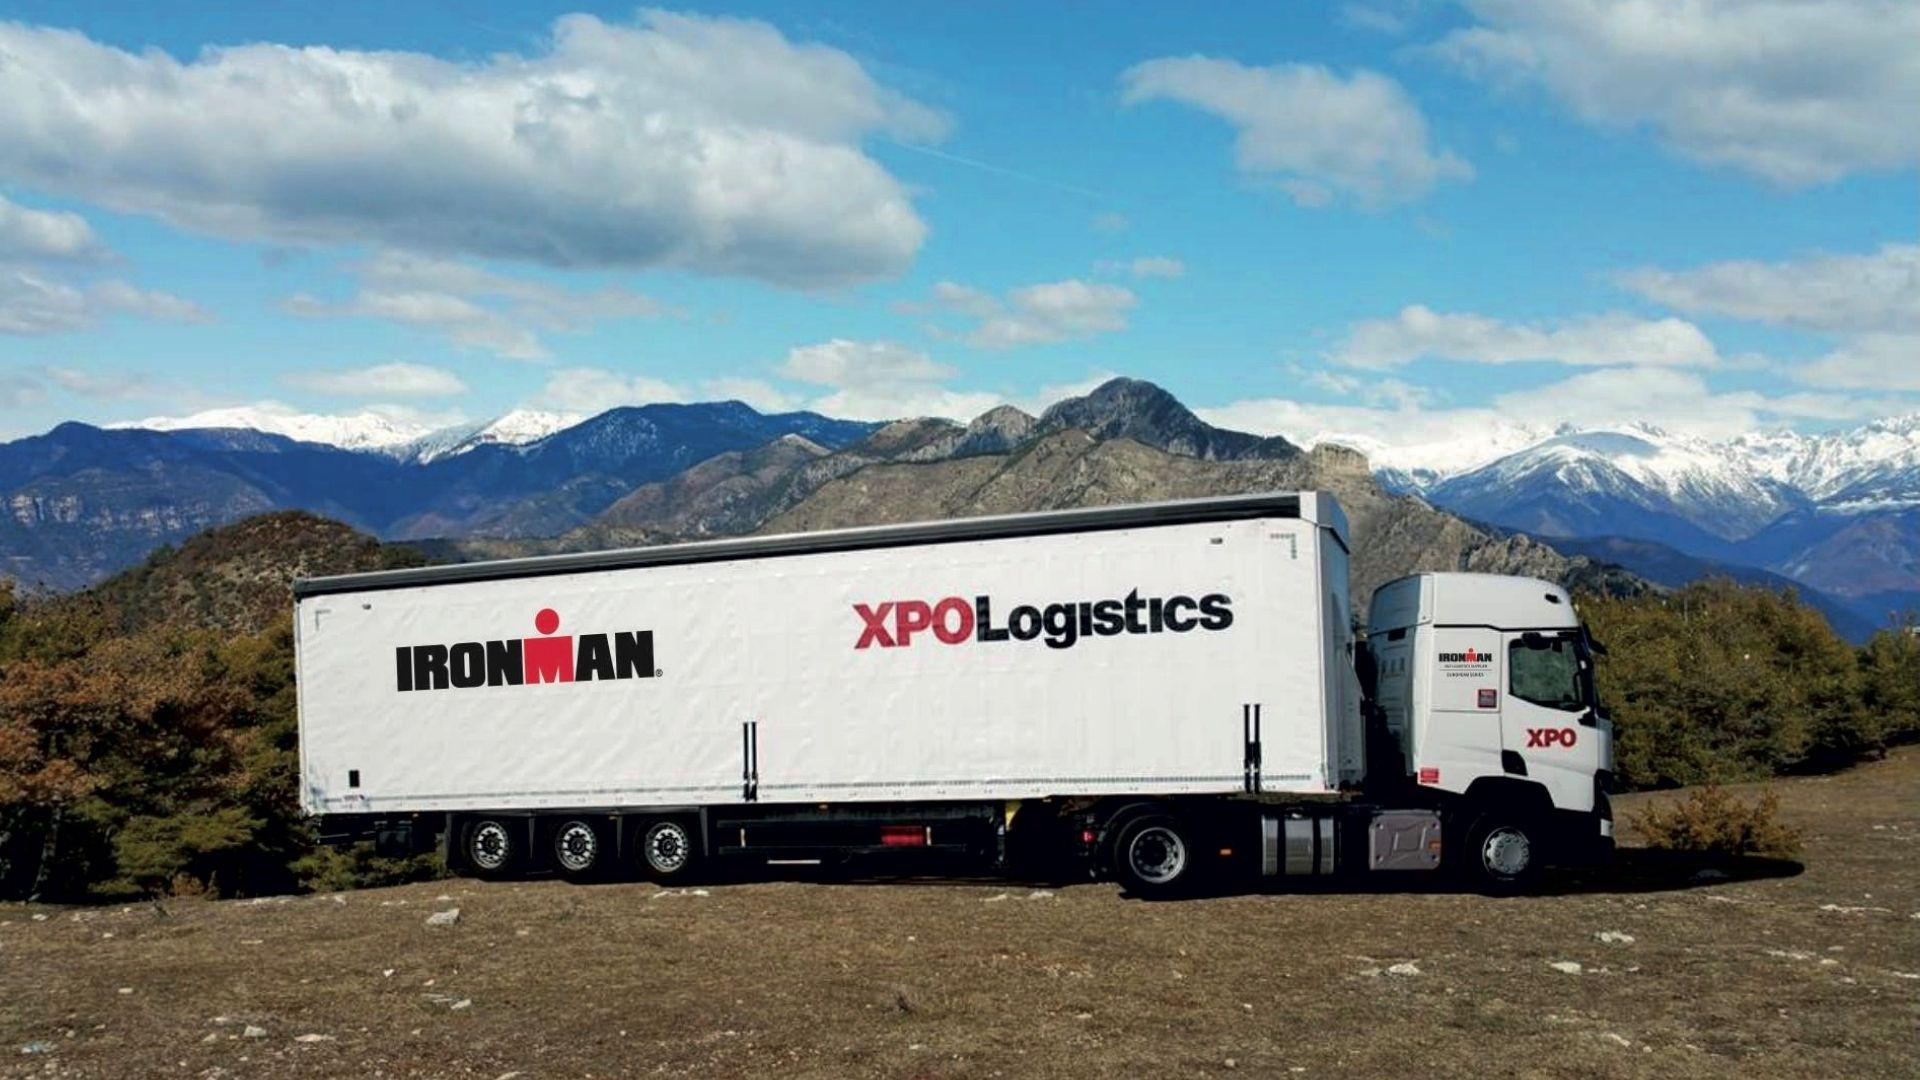 XPO truck for IRONMAN race